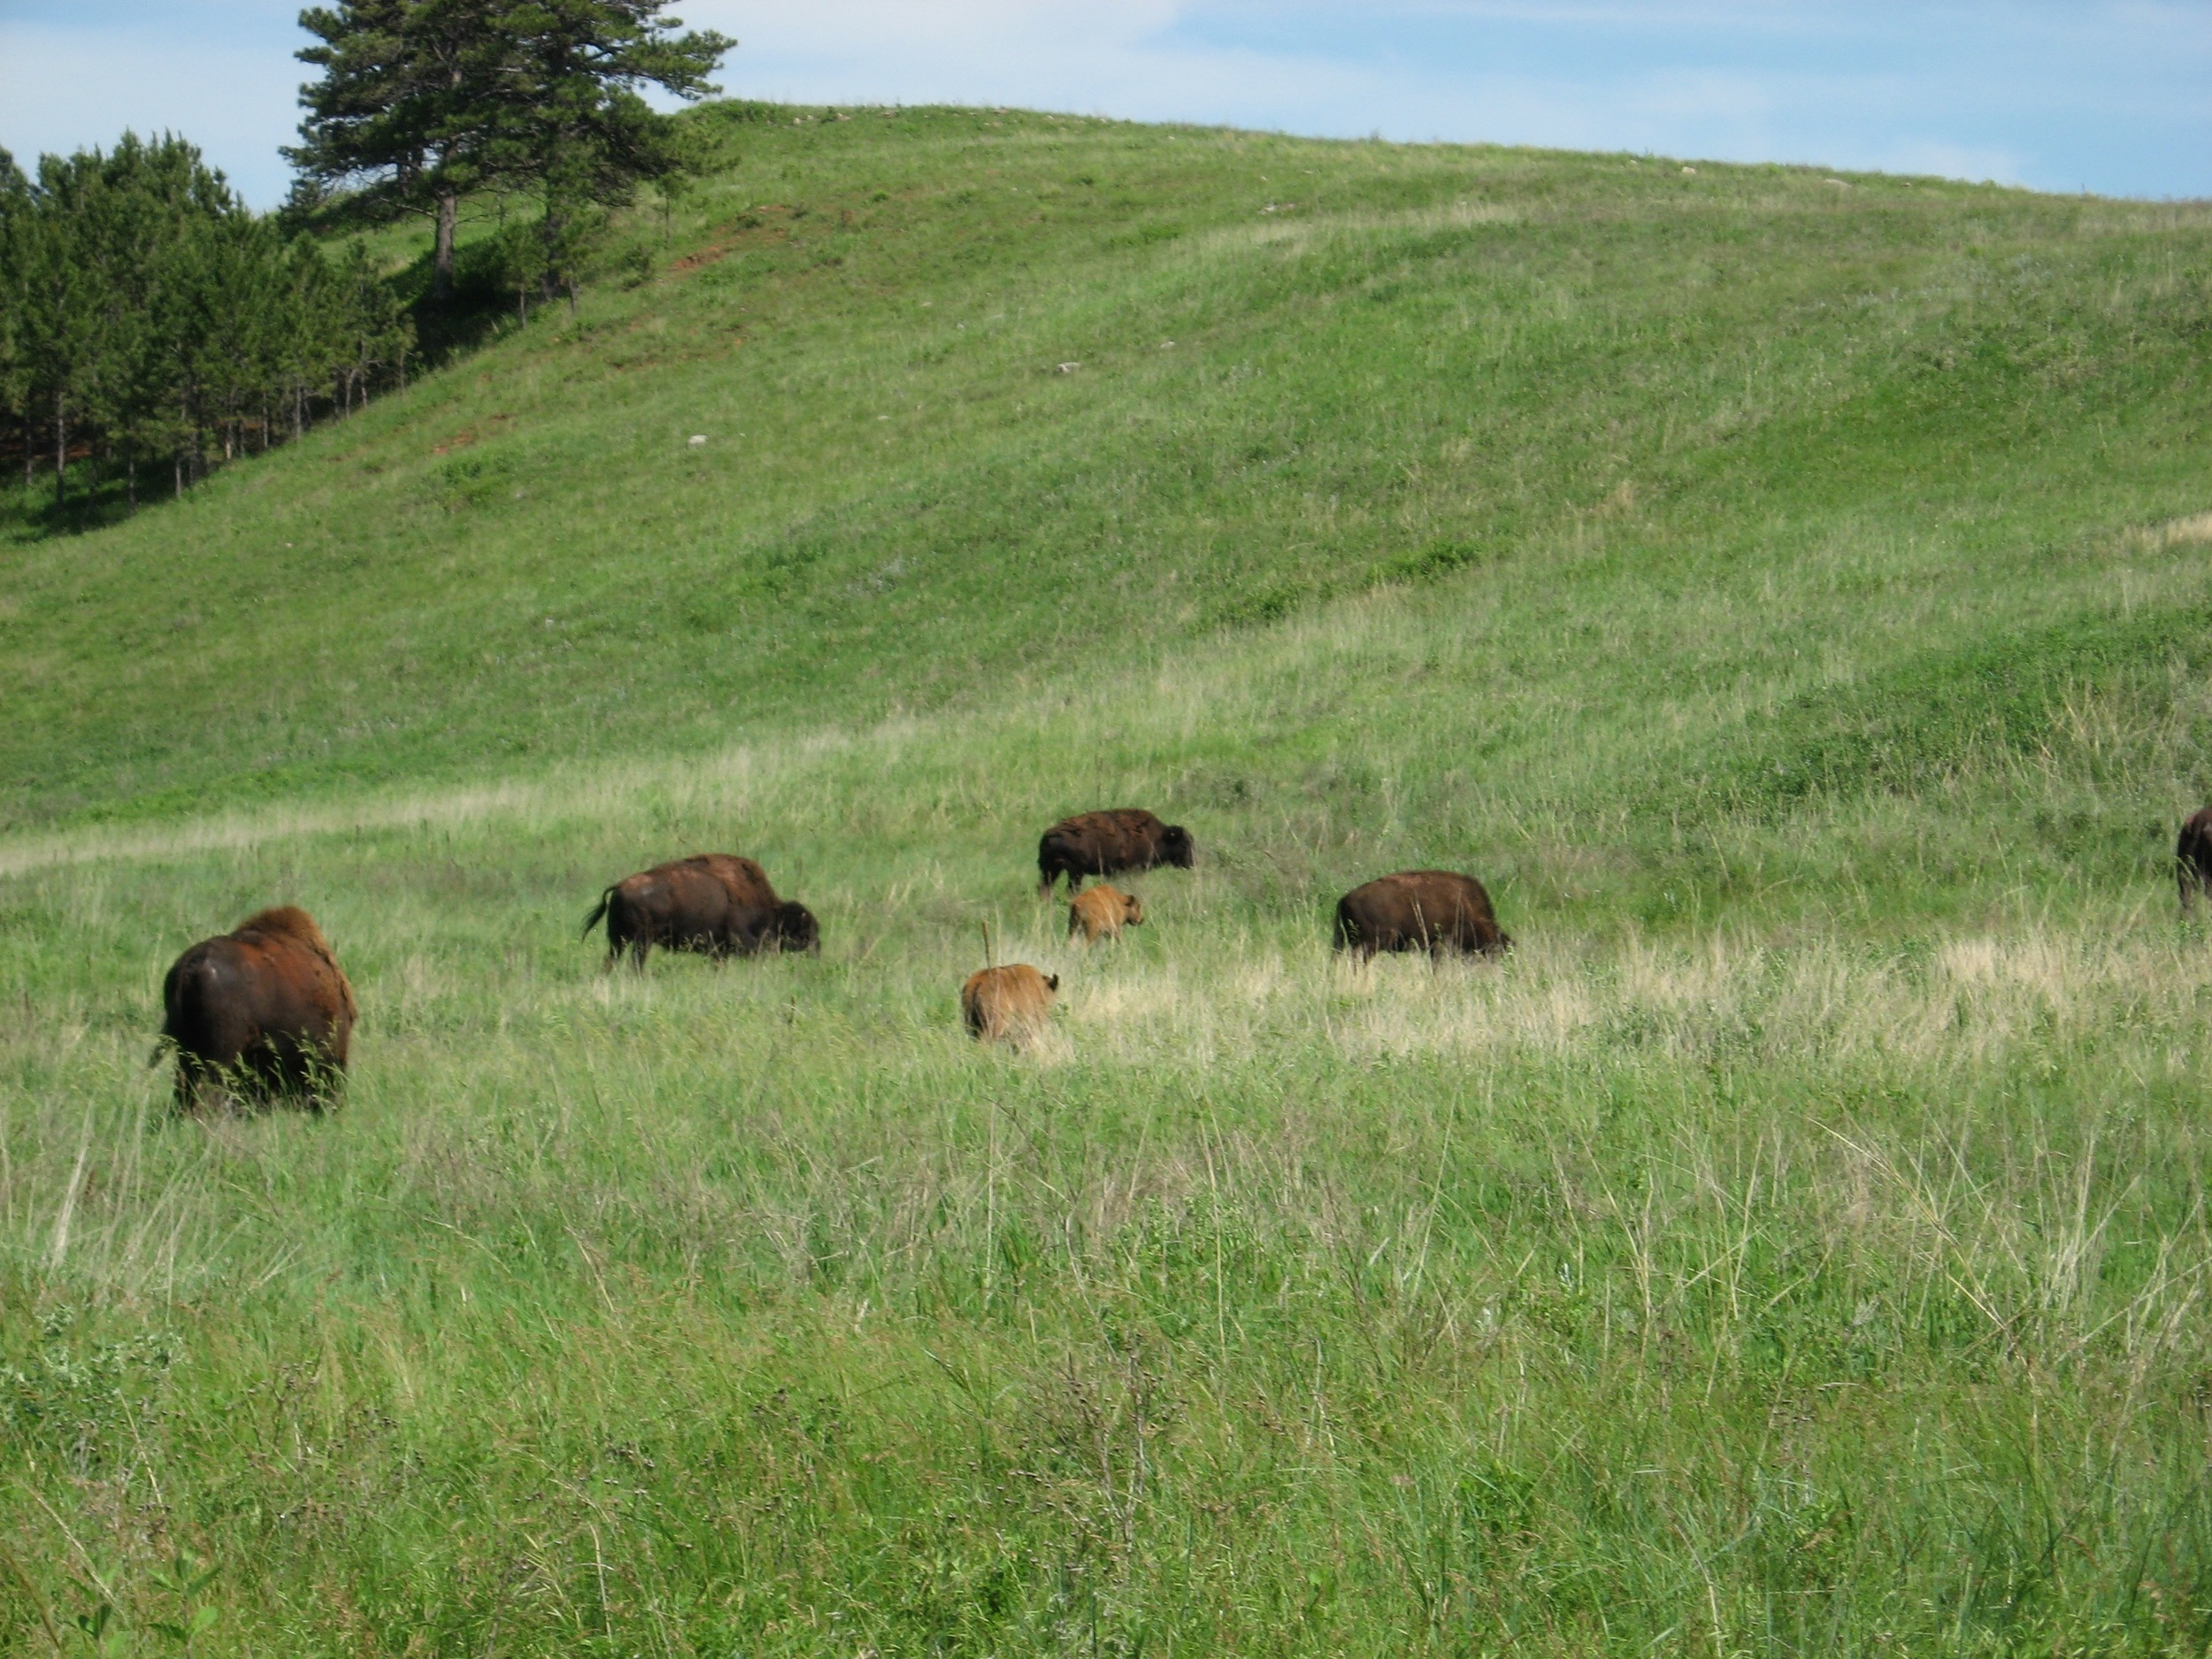 With Baby Bison